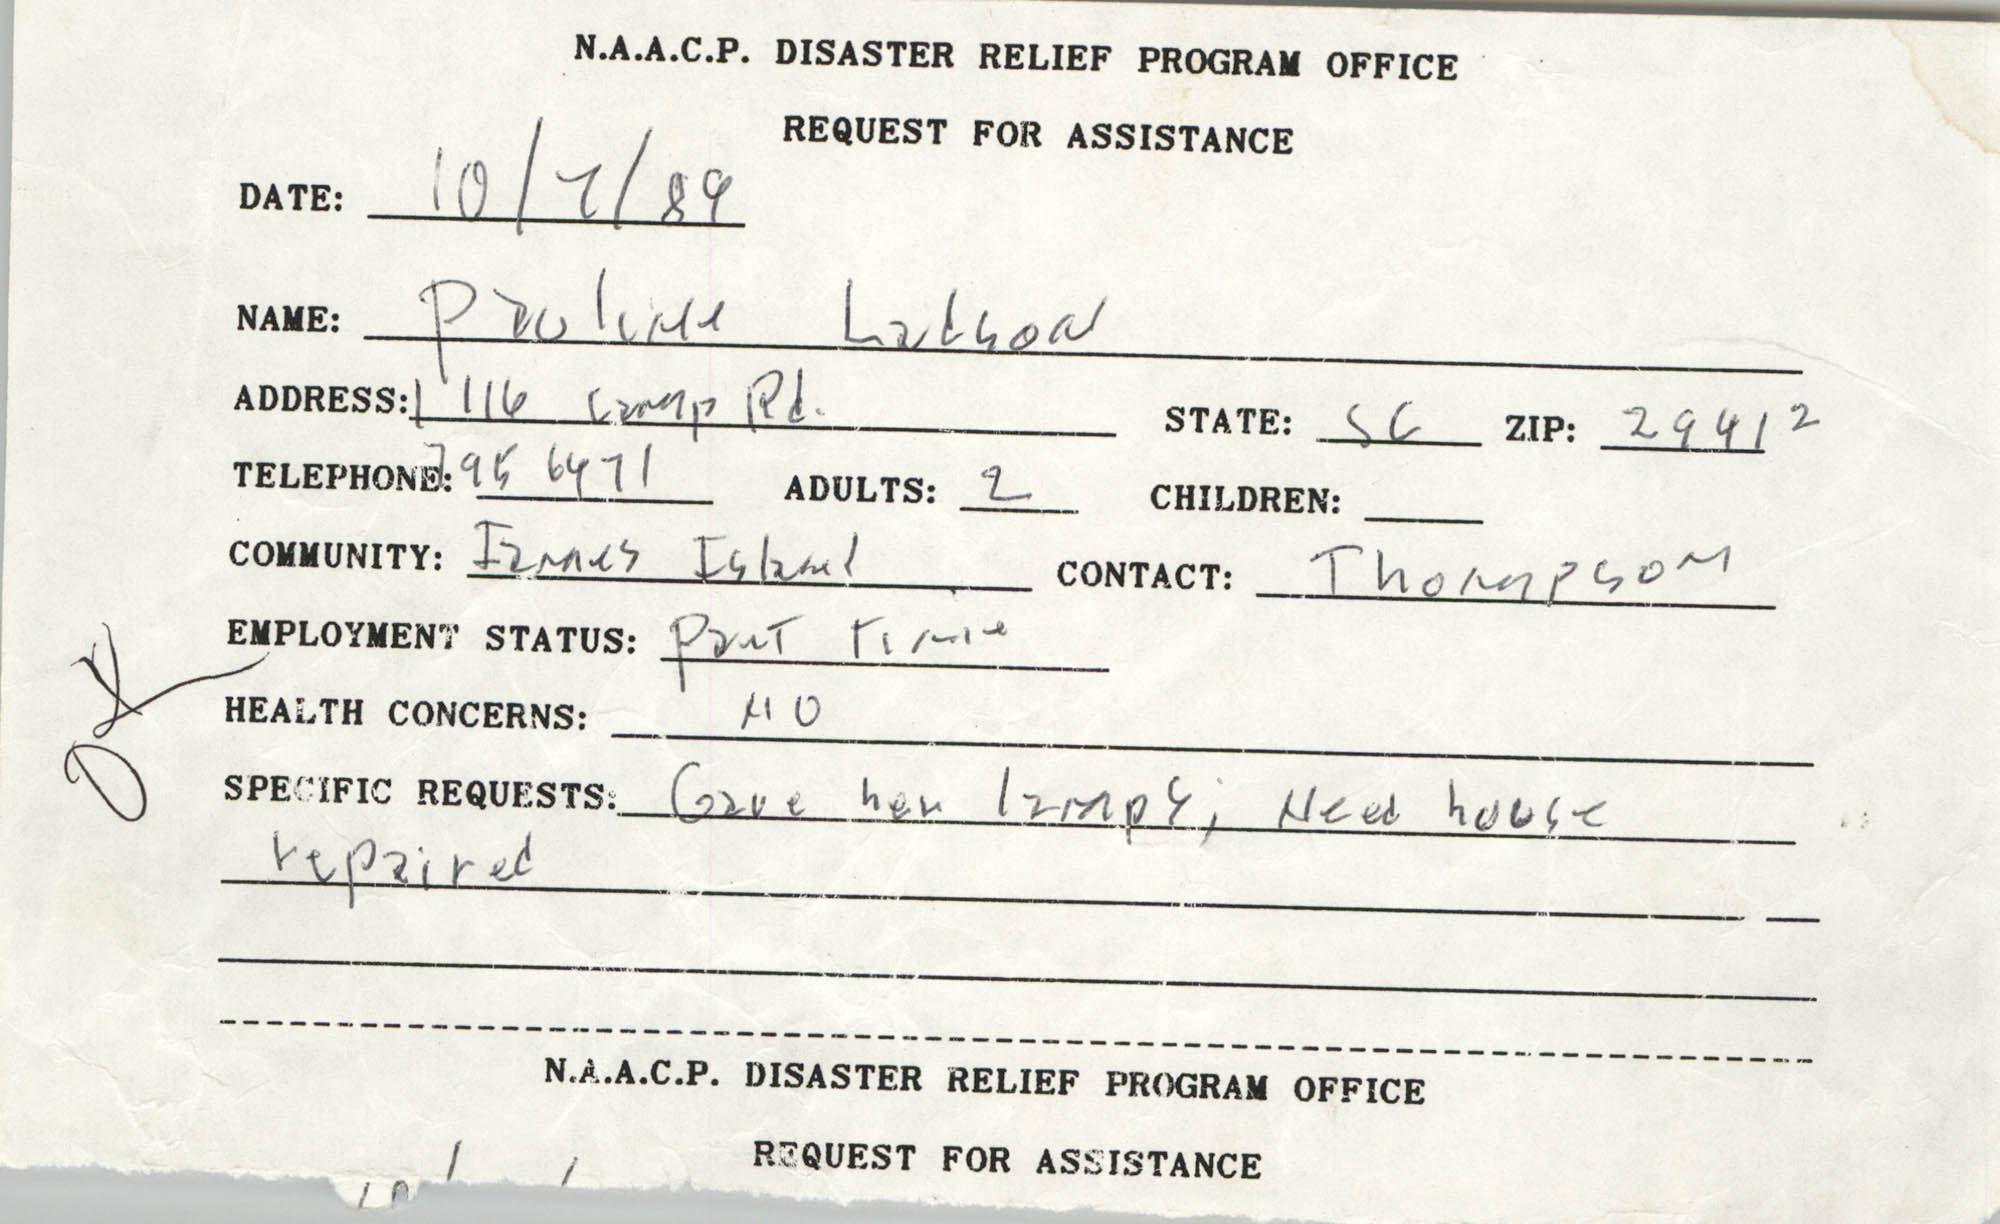 NAACP Disaster Relief Program Office, Hurricane Huge Requests for Assistance, 1989, Page 17